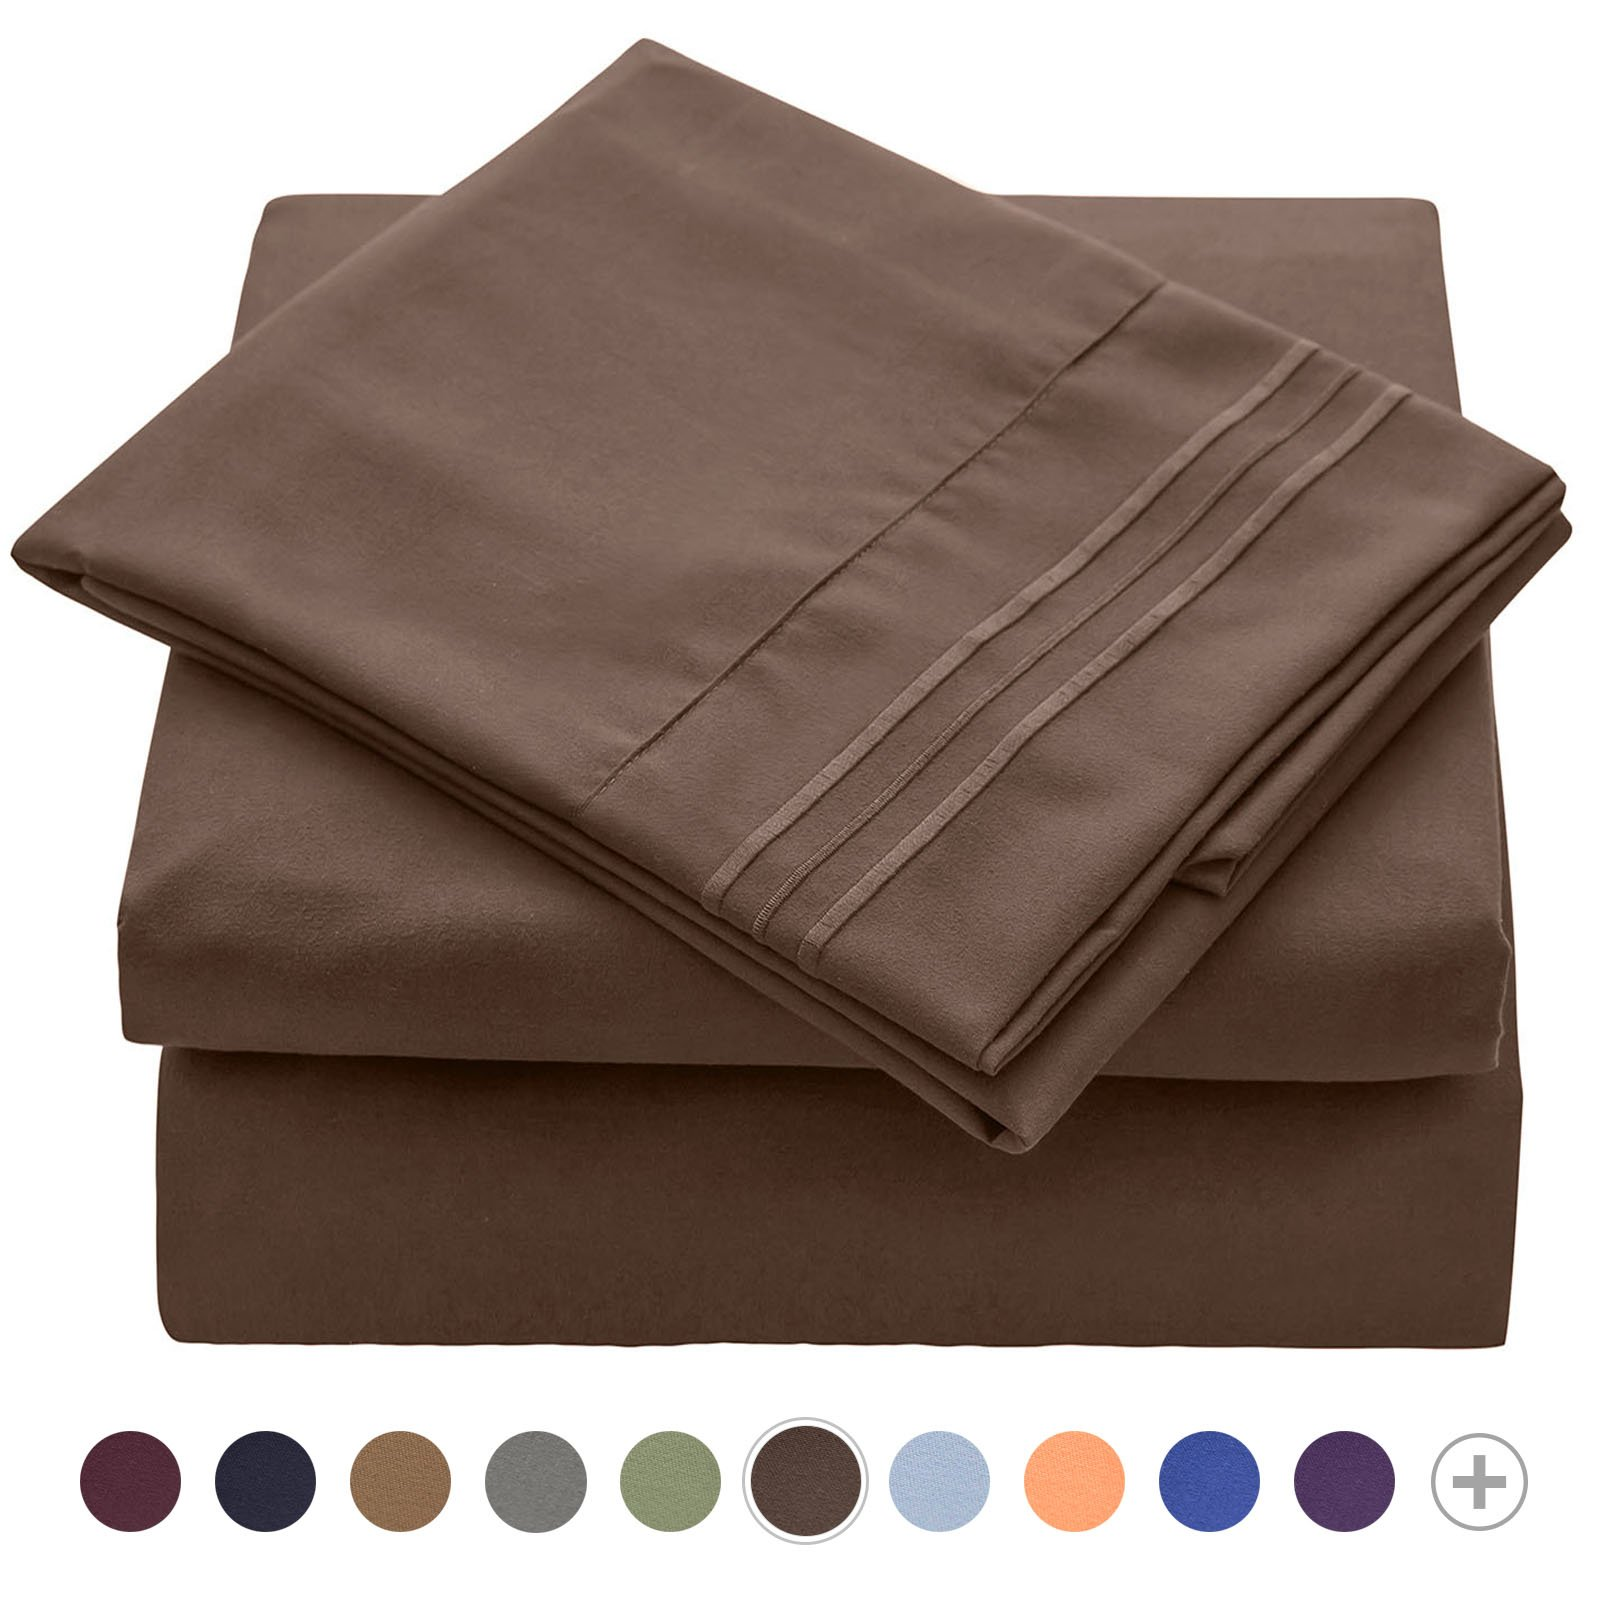 VEEYOO 1800 Thread Count Mircofiber Bed Sheet Set - Wrinkle, Stain, Fade Resistant Hypoallergenic Extra Soft Bedding Sets - Luxury Hotel Quality Deep Pocket Twin Sheets Set, 3 Pieces, Chocolate